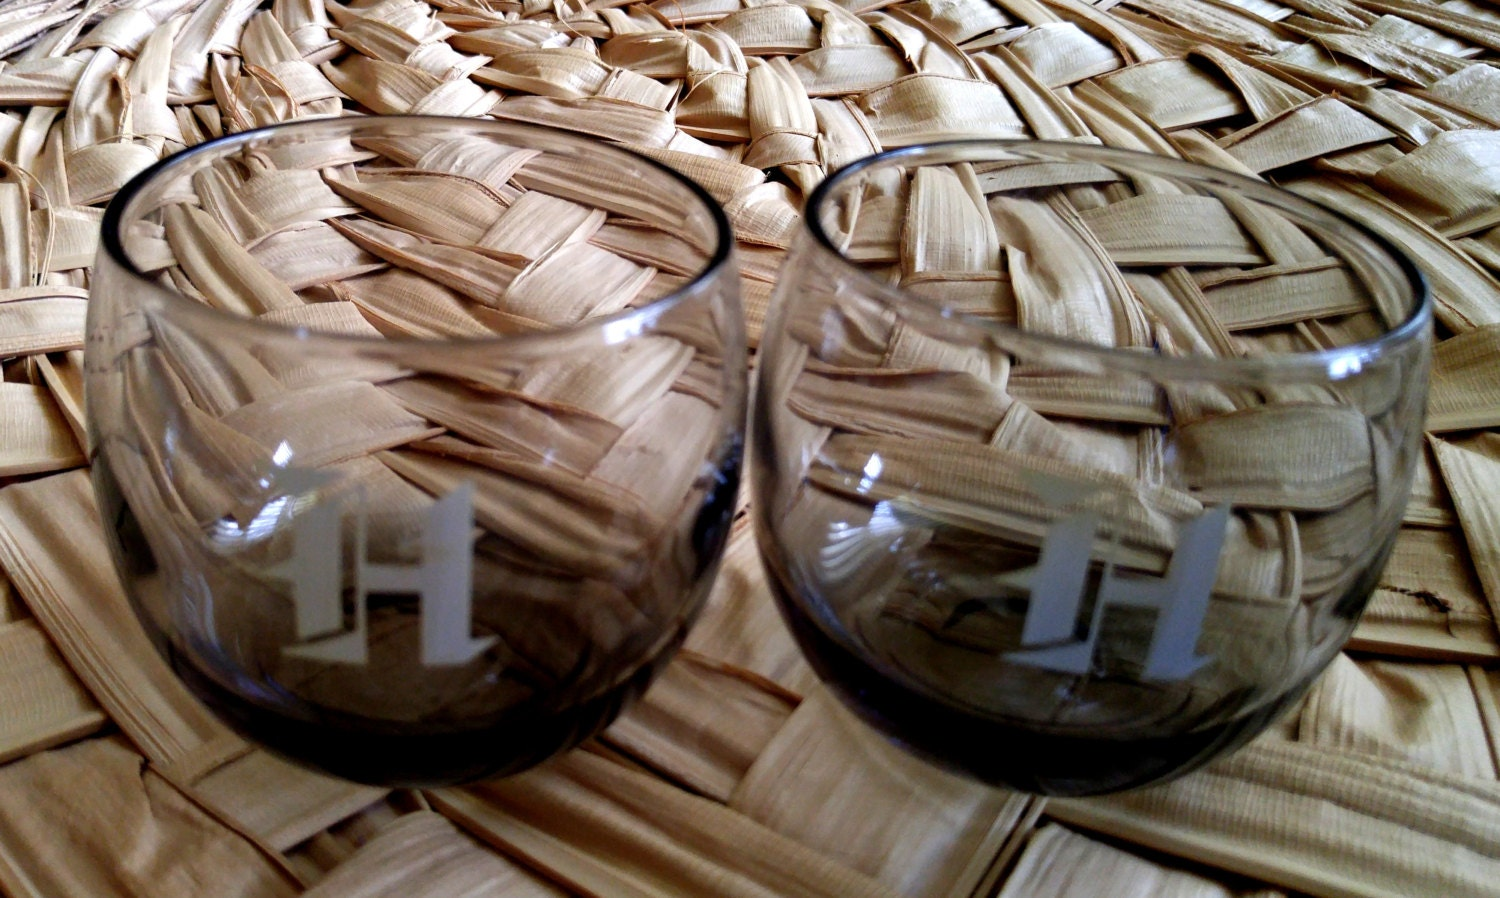 Vintage Set Of Two Stemless Smokey Brandy Wine And Cognac Glasses Monogrammed With H Haute Juice